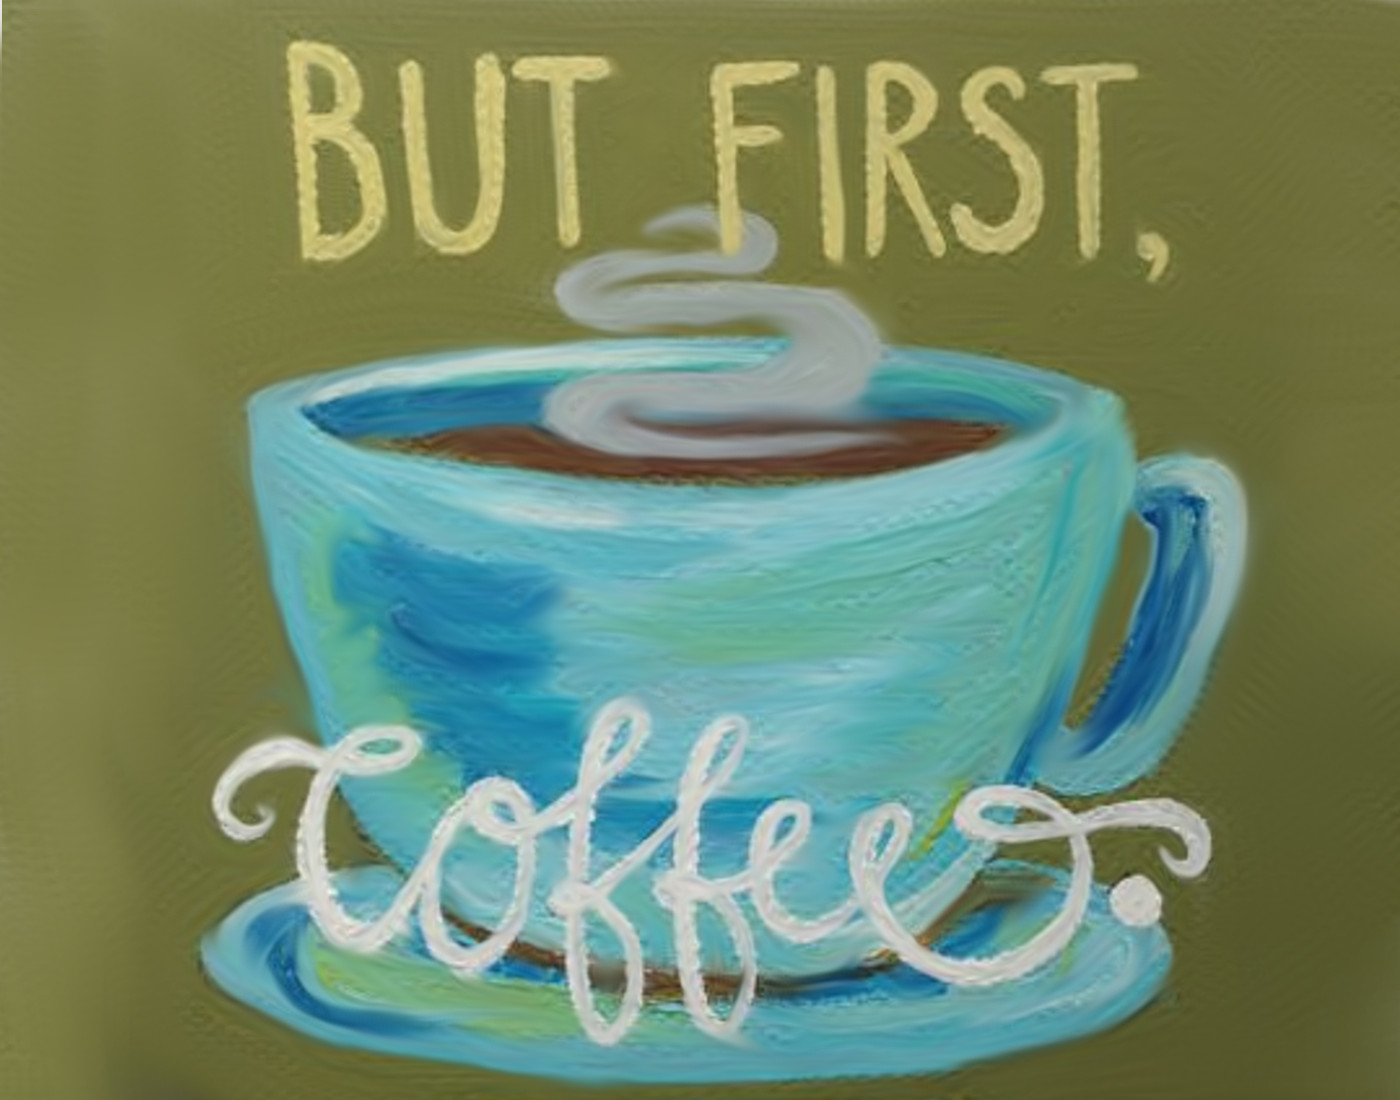 But+First+Coffee.jpg